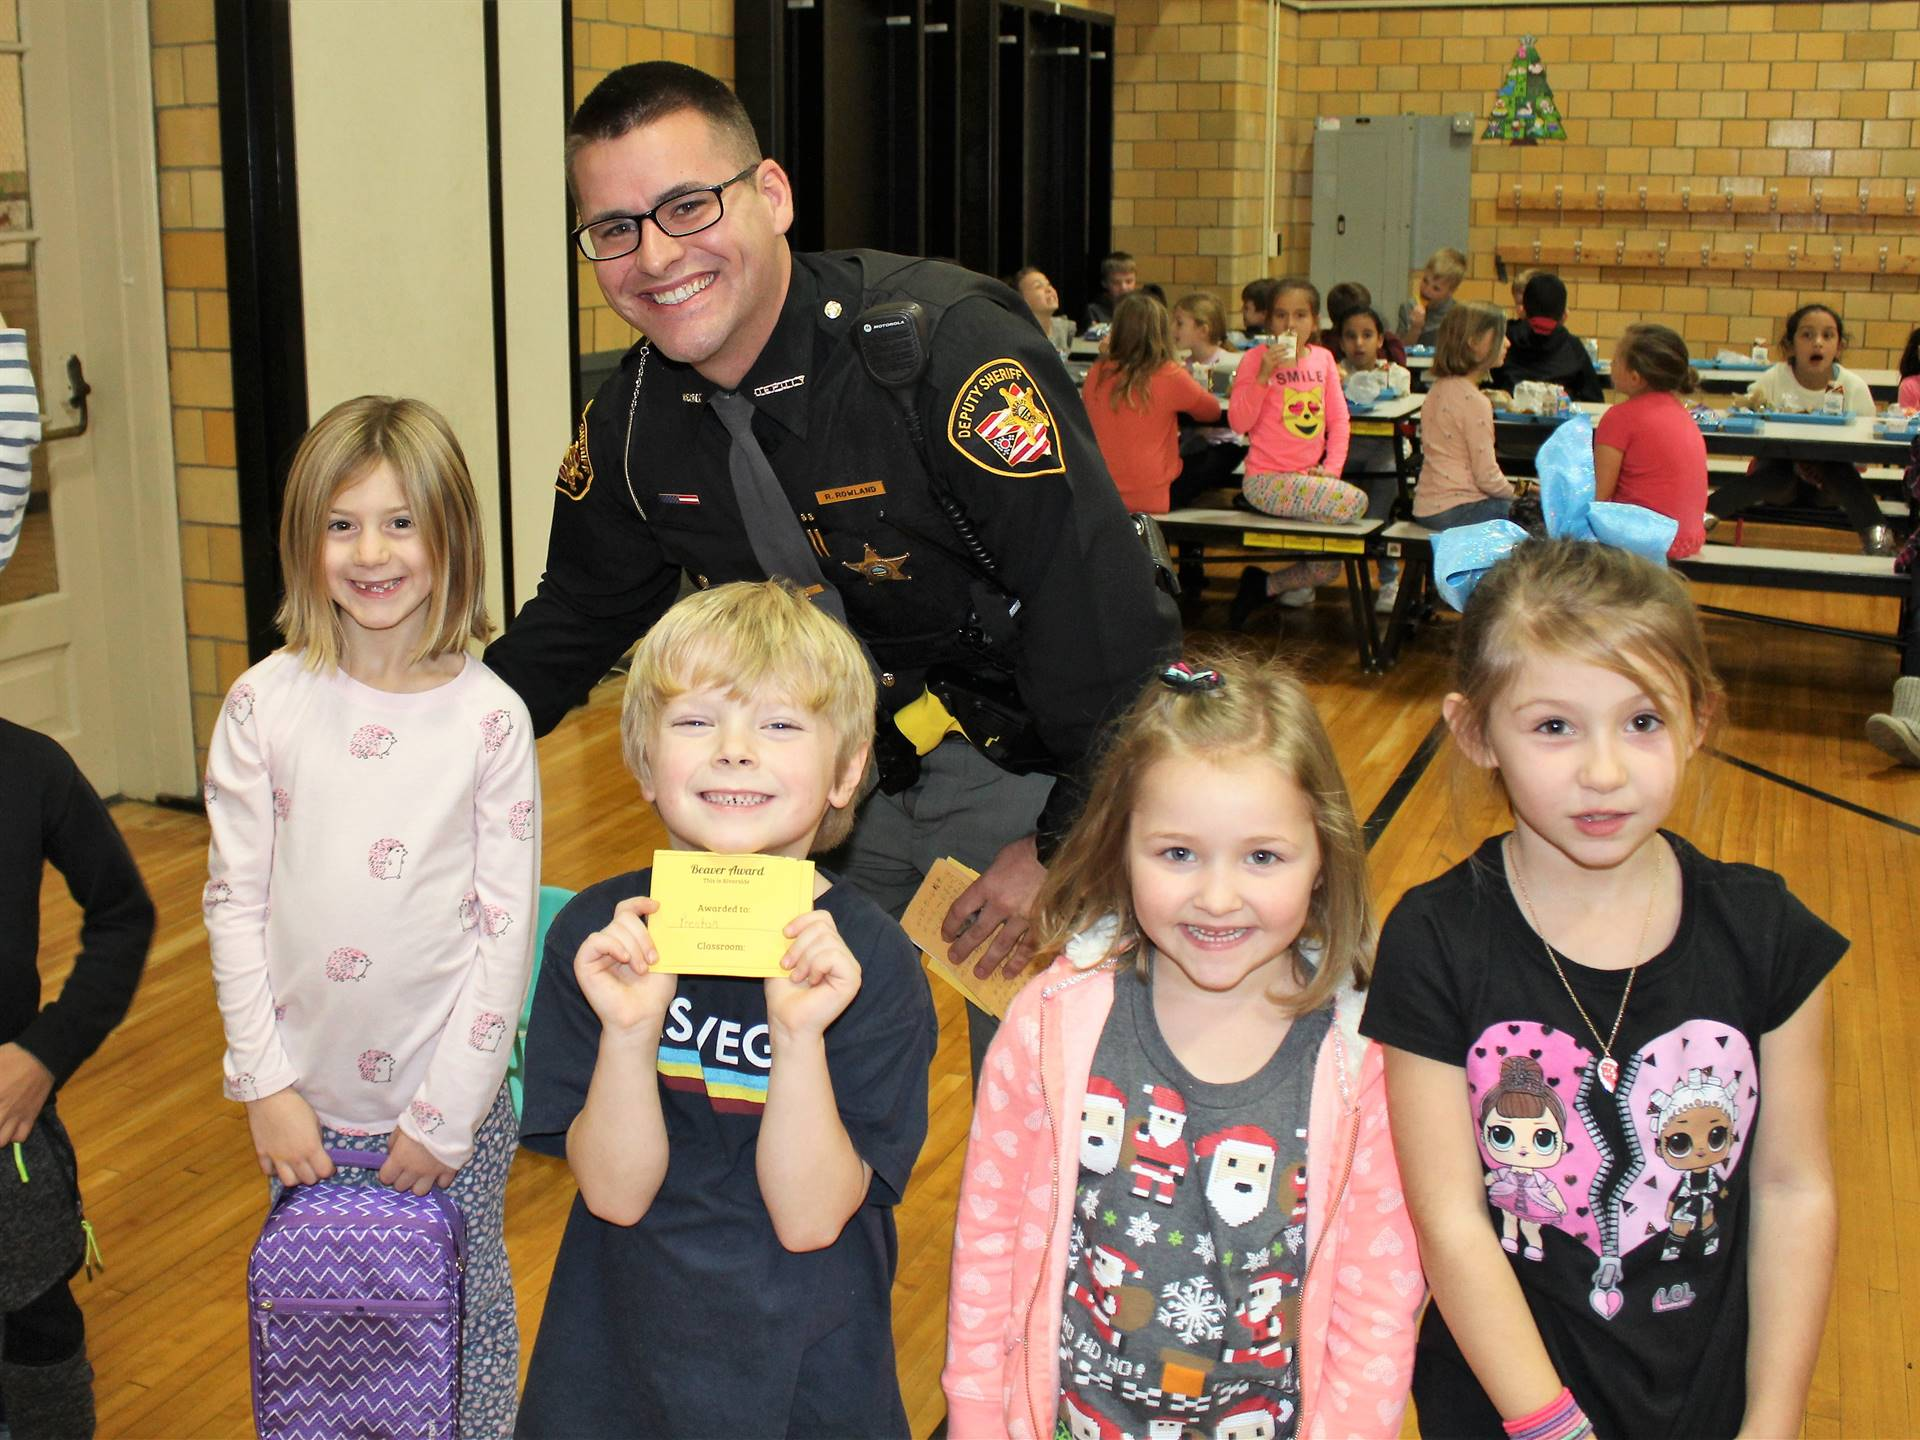 Deputy Rowland came for lunch!